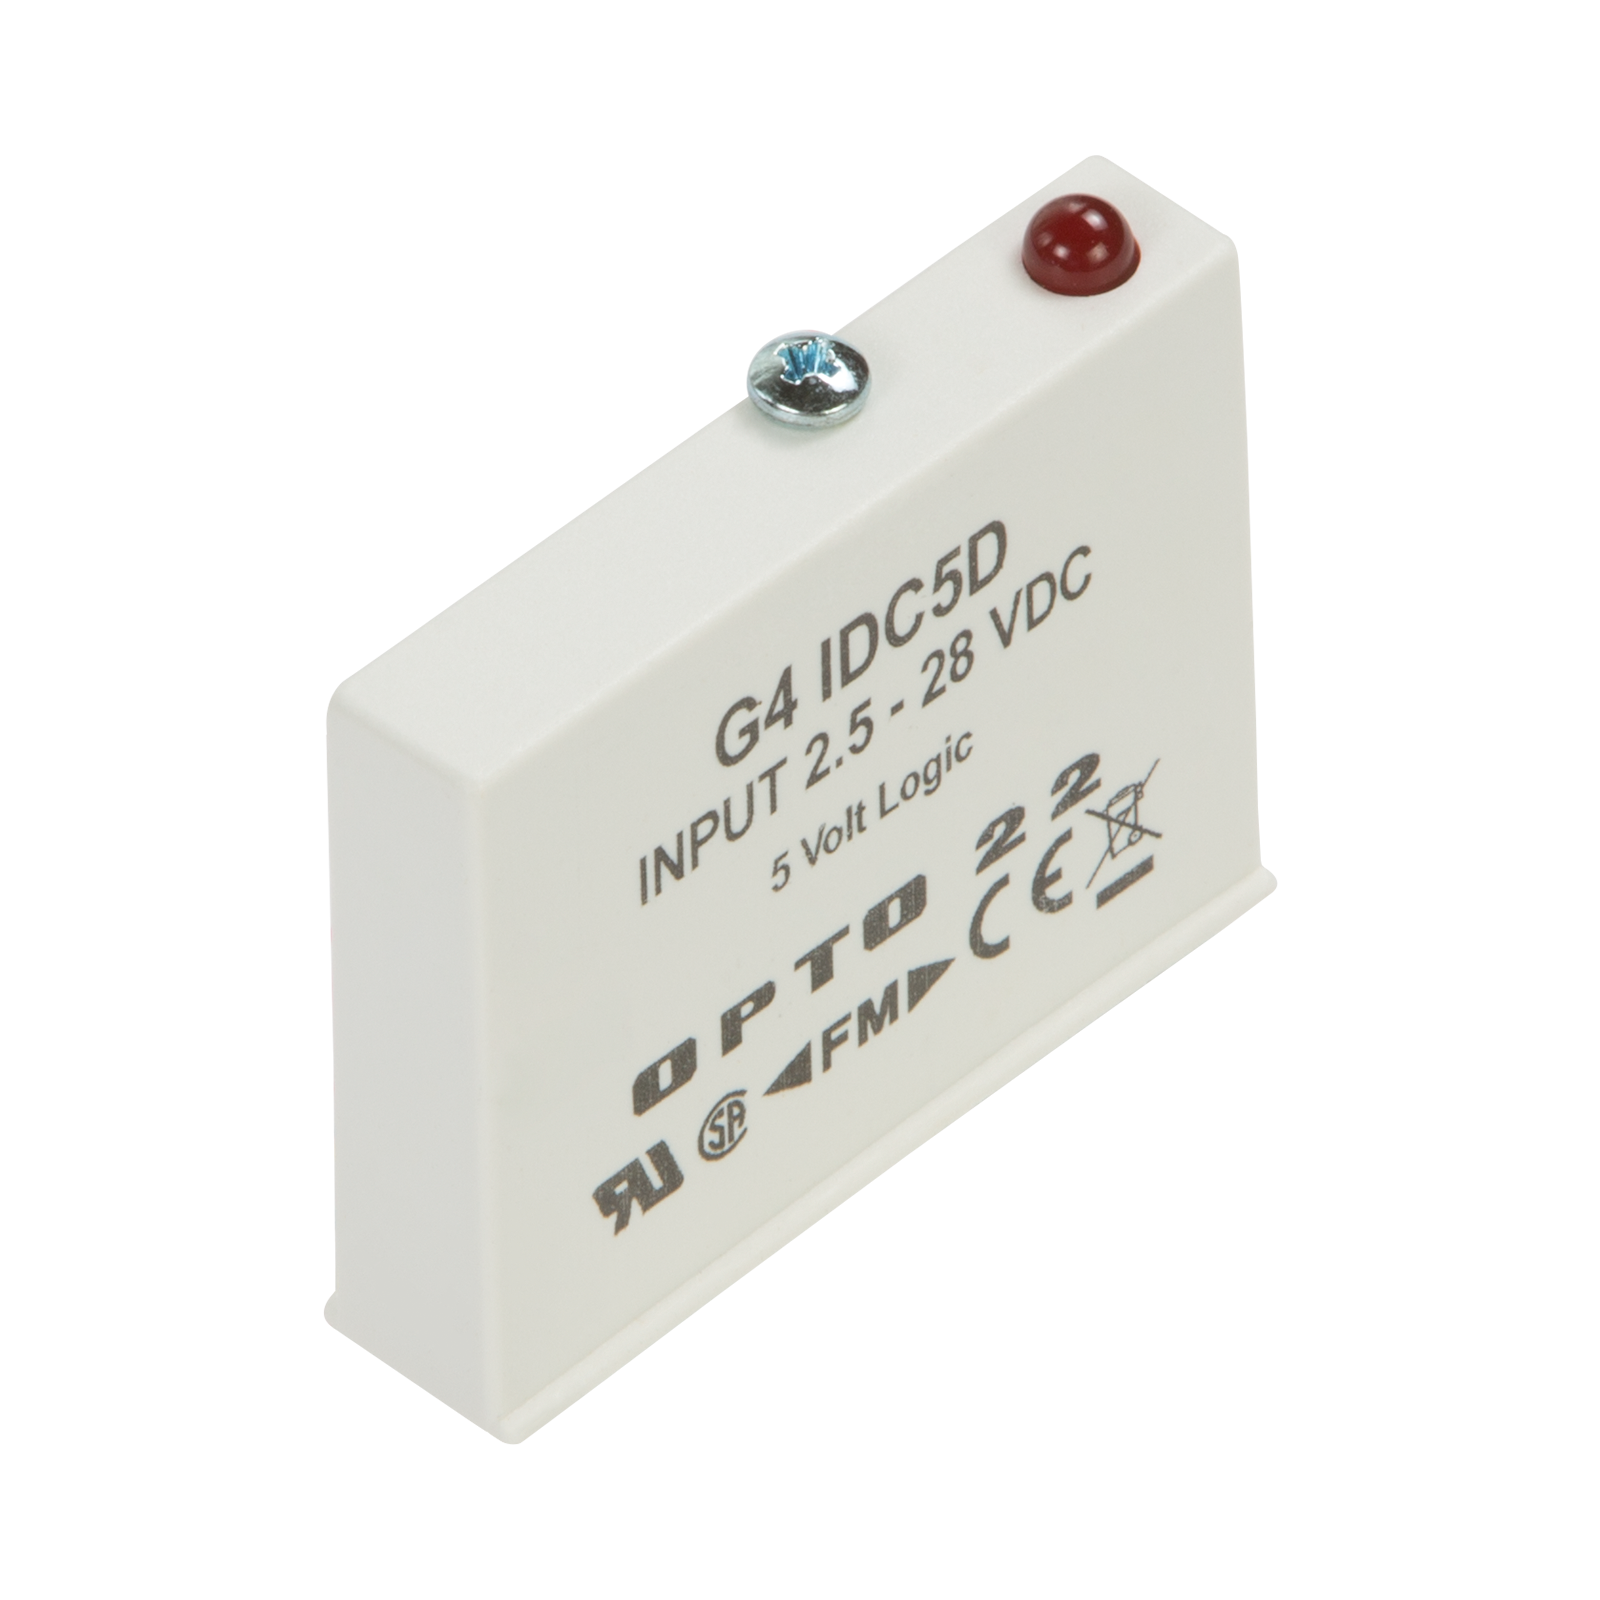 Opto 22 Ssr Wiring Diagram Libraries Solid State Relay Z240d10 Opto22 G4idc5d G4 Dc Input 2 5 28 Vdc Logicopto